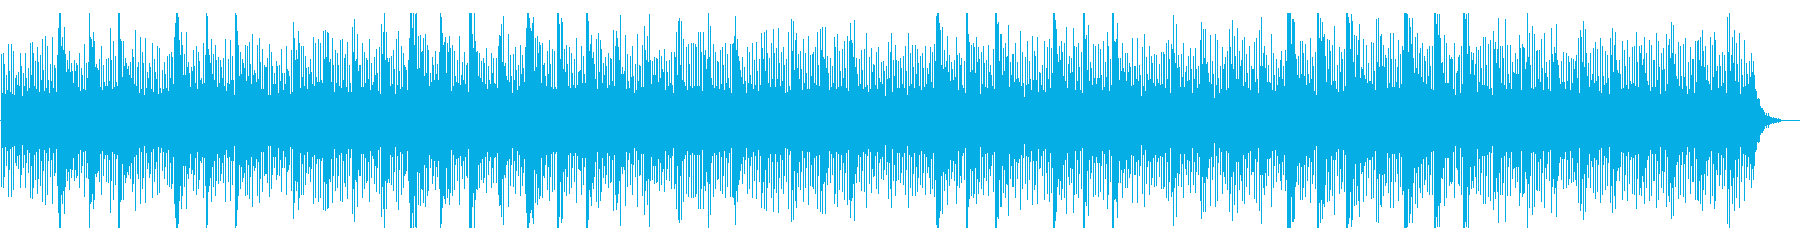 [Without kick / clap] Raise the issue of verification program's reproduced waveform